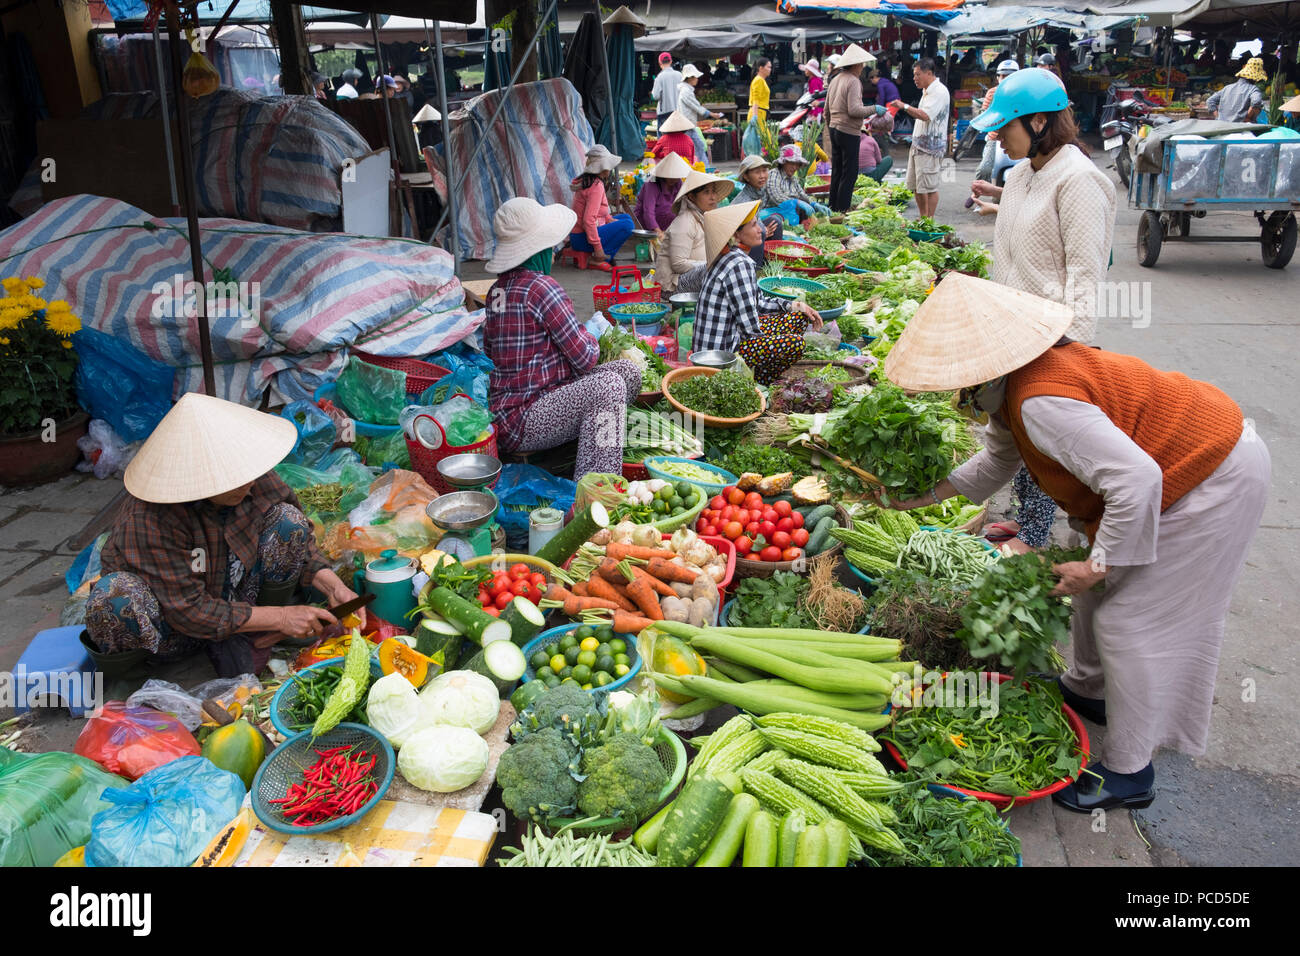 Fruit and vegetables for sale at the market in Hoi An, Quang Nam Province, Vietnam, Indochina, Southeast Asia, Asia - Stock Image